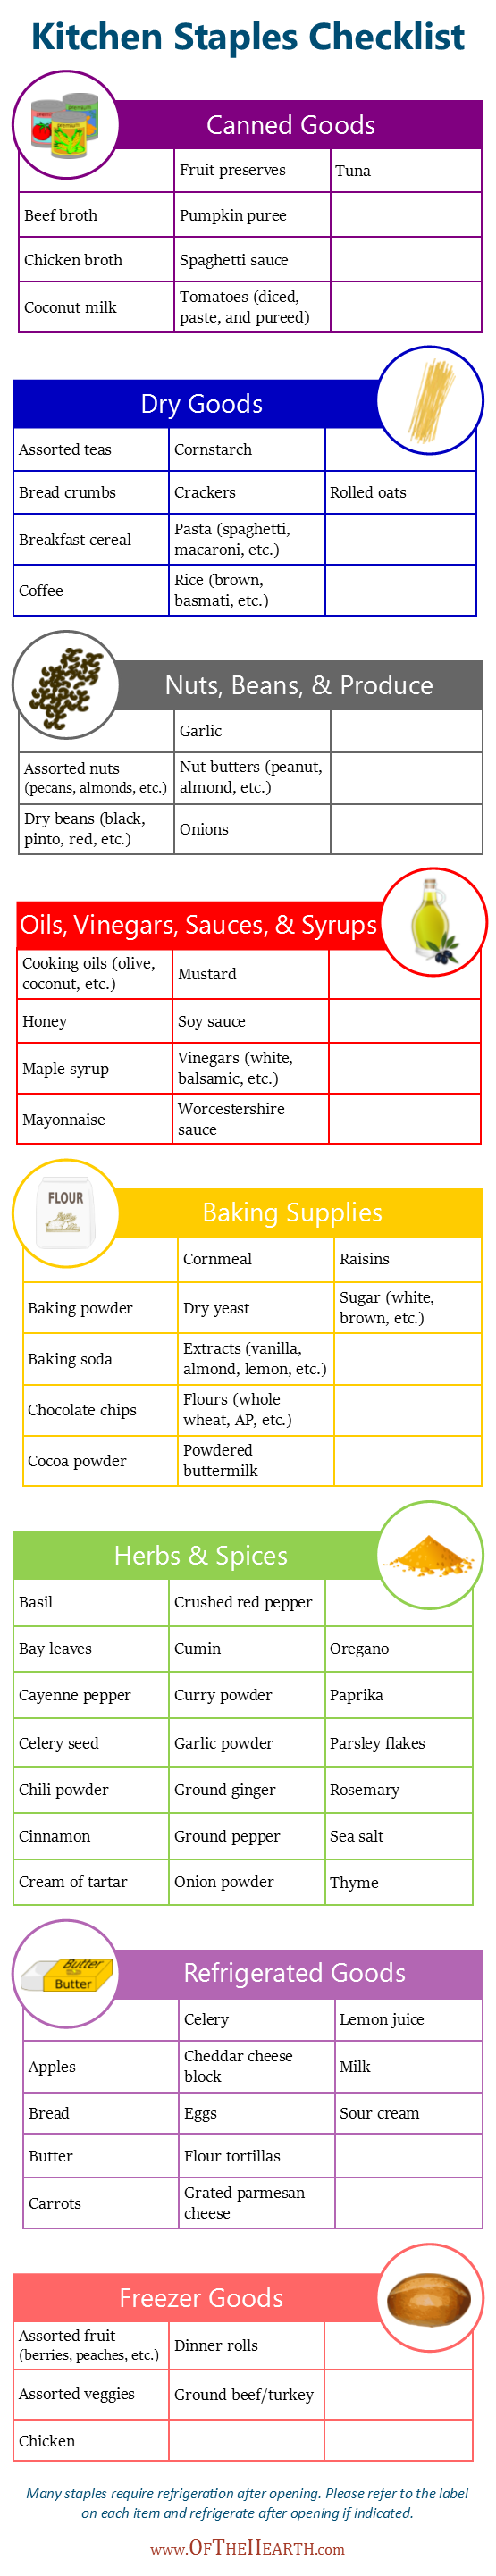 Printable Kitchen Staples Checklist